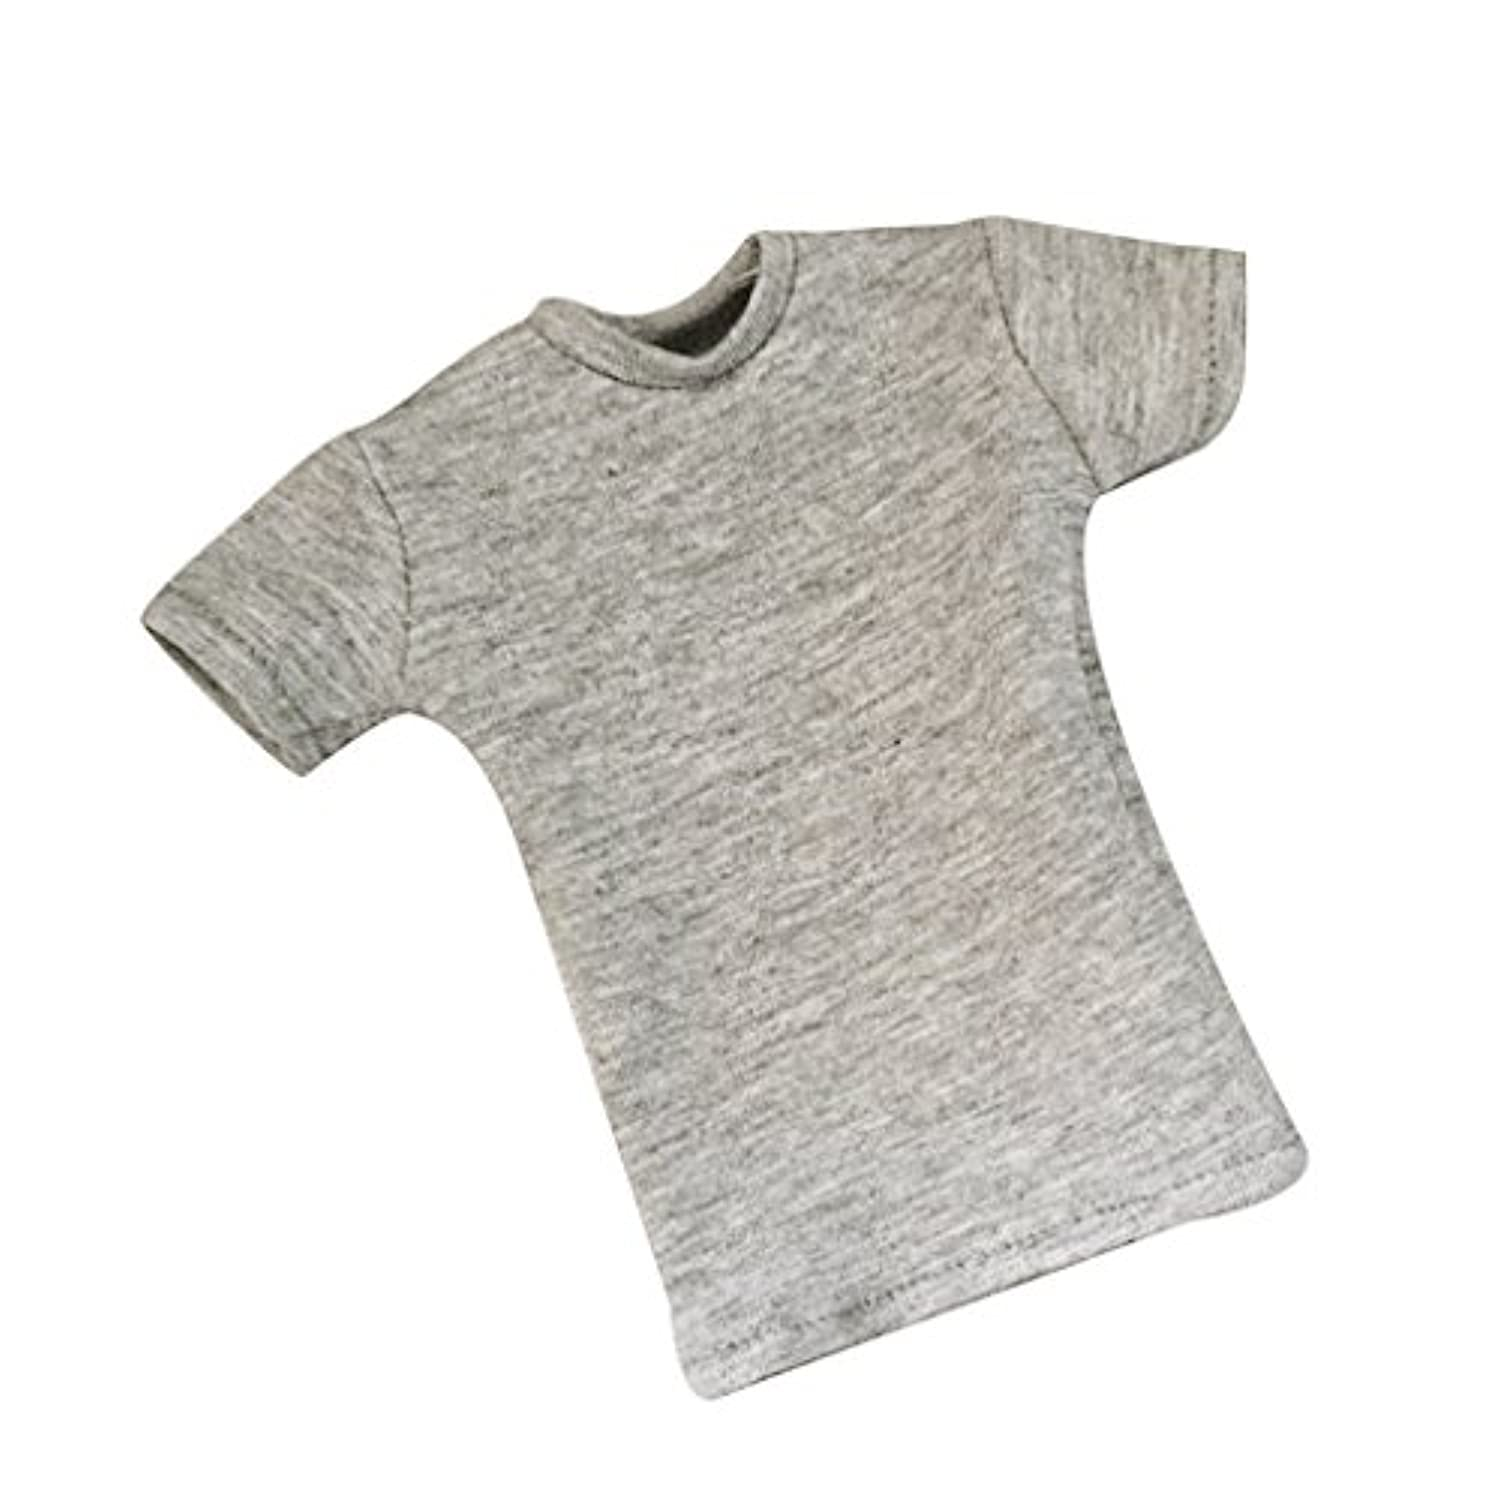 Jili Online 1/6th Scale Grey T-Shirt for 12'' HT/DID/SS/DML/TC Male Action Figure Body